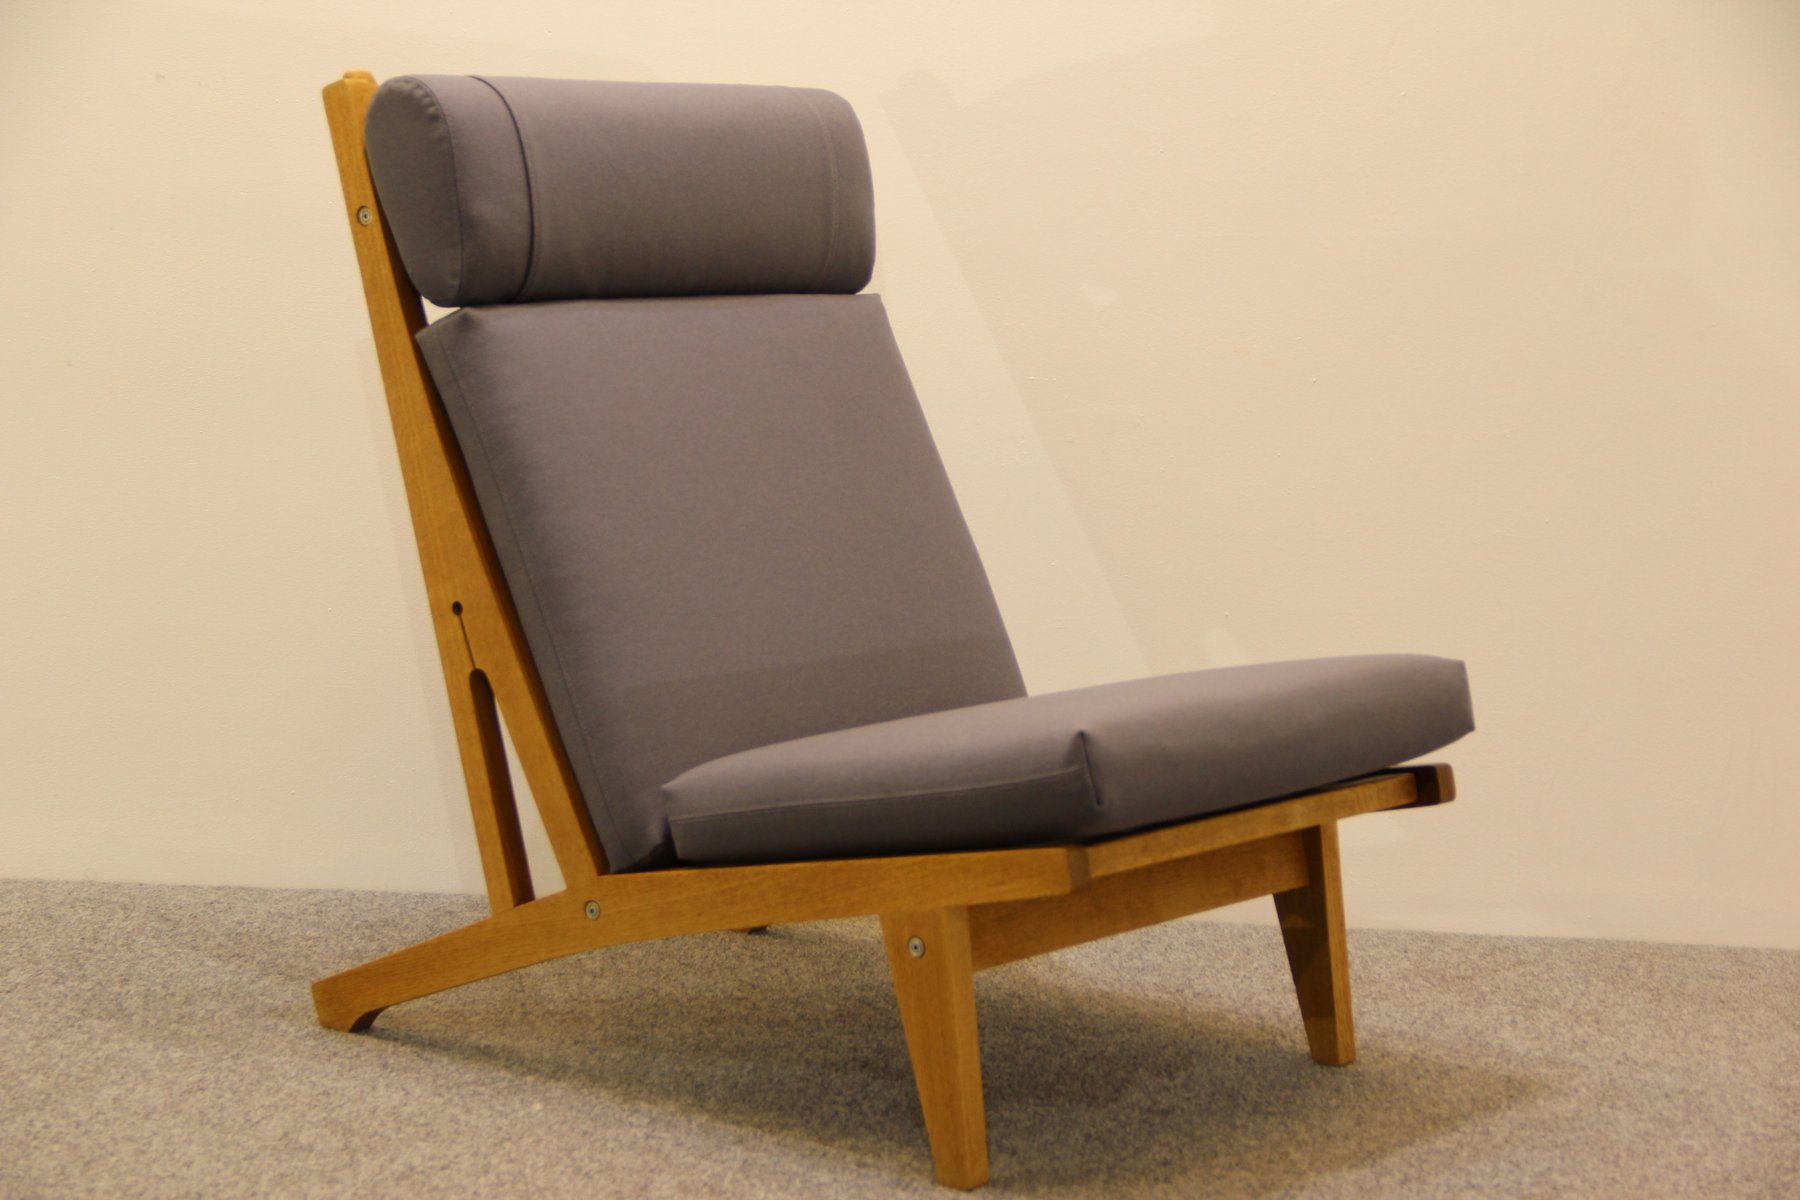 Danish Oak Lounge Chair by Hans J Wegner for Getama 1960s for